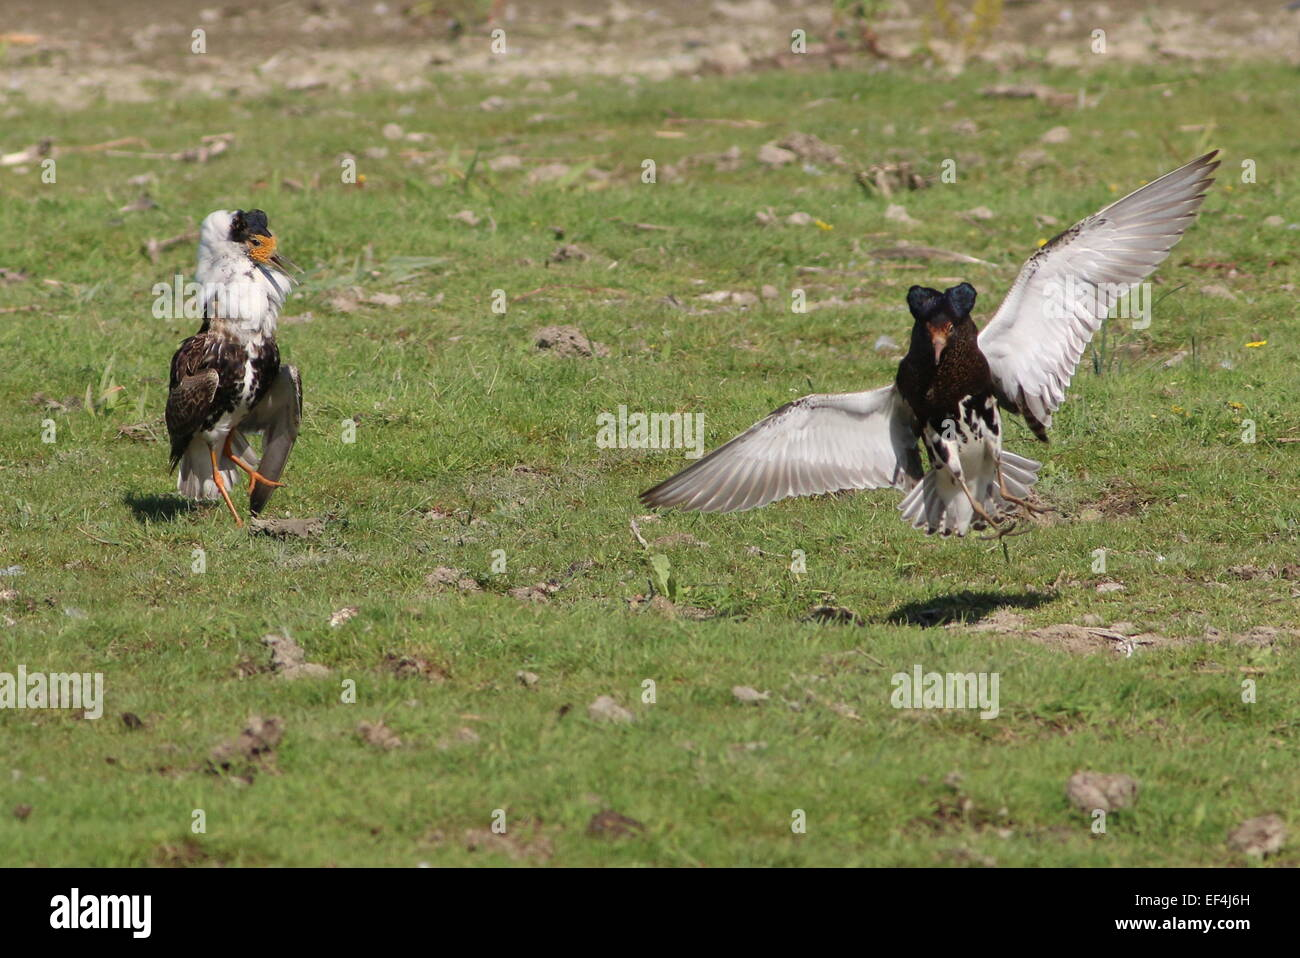 Two European Ruffs (Philomachus pugnax) in full display plumage  in their lek or mating arena during springtime - Stock Image